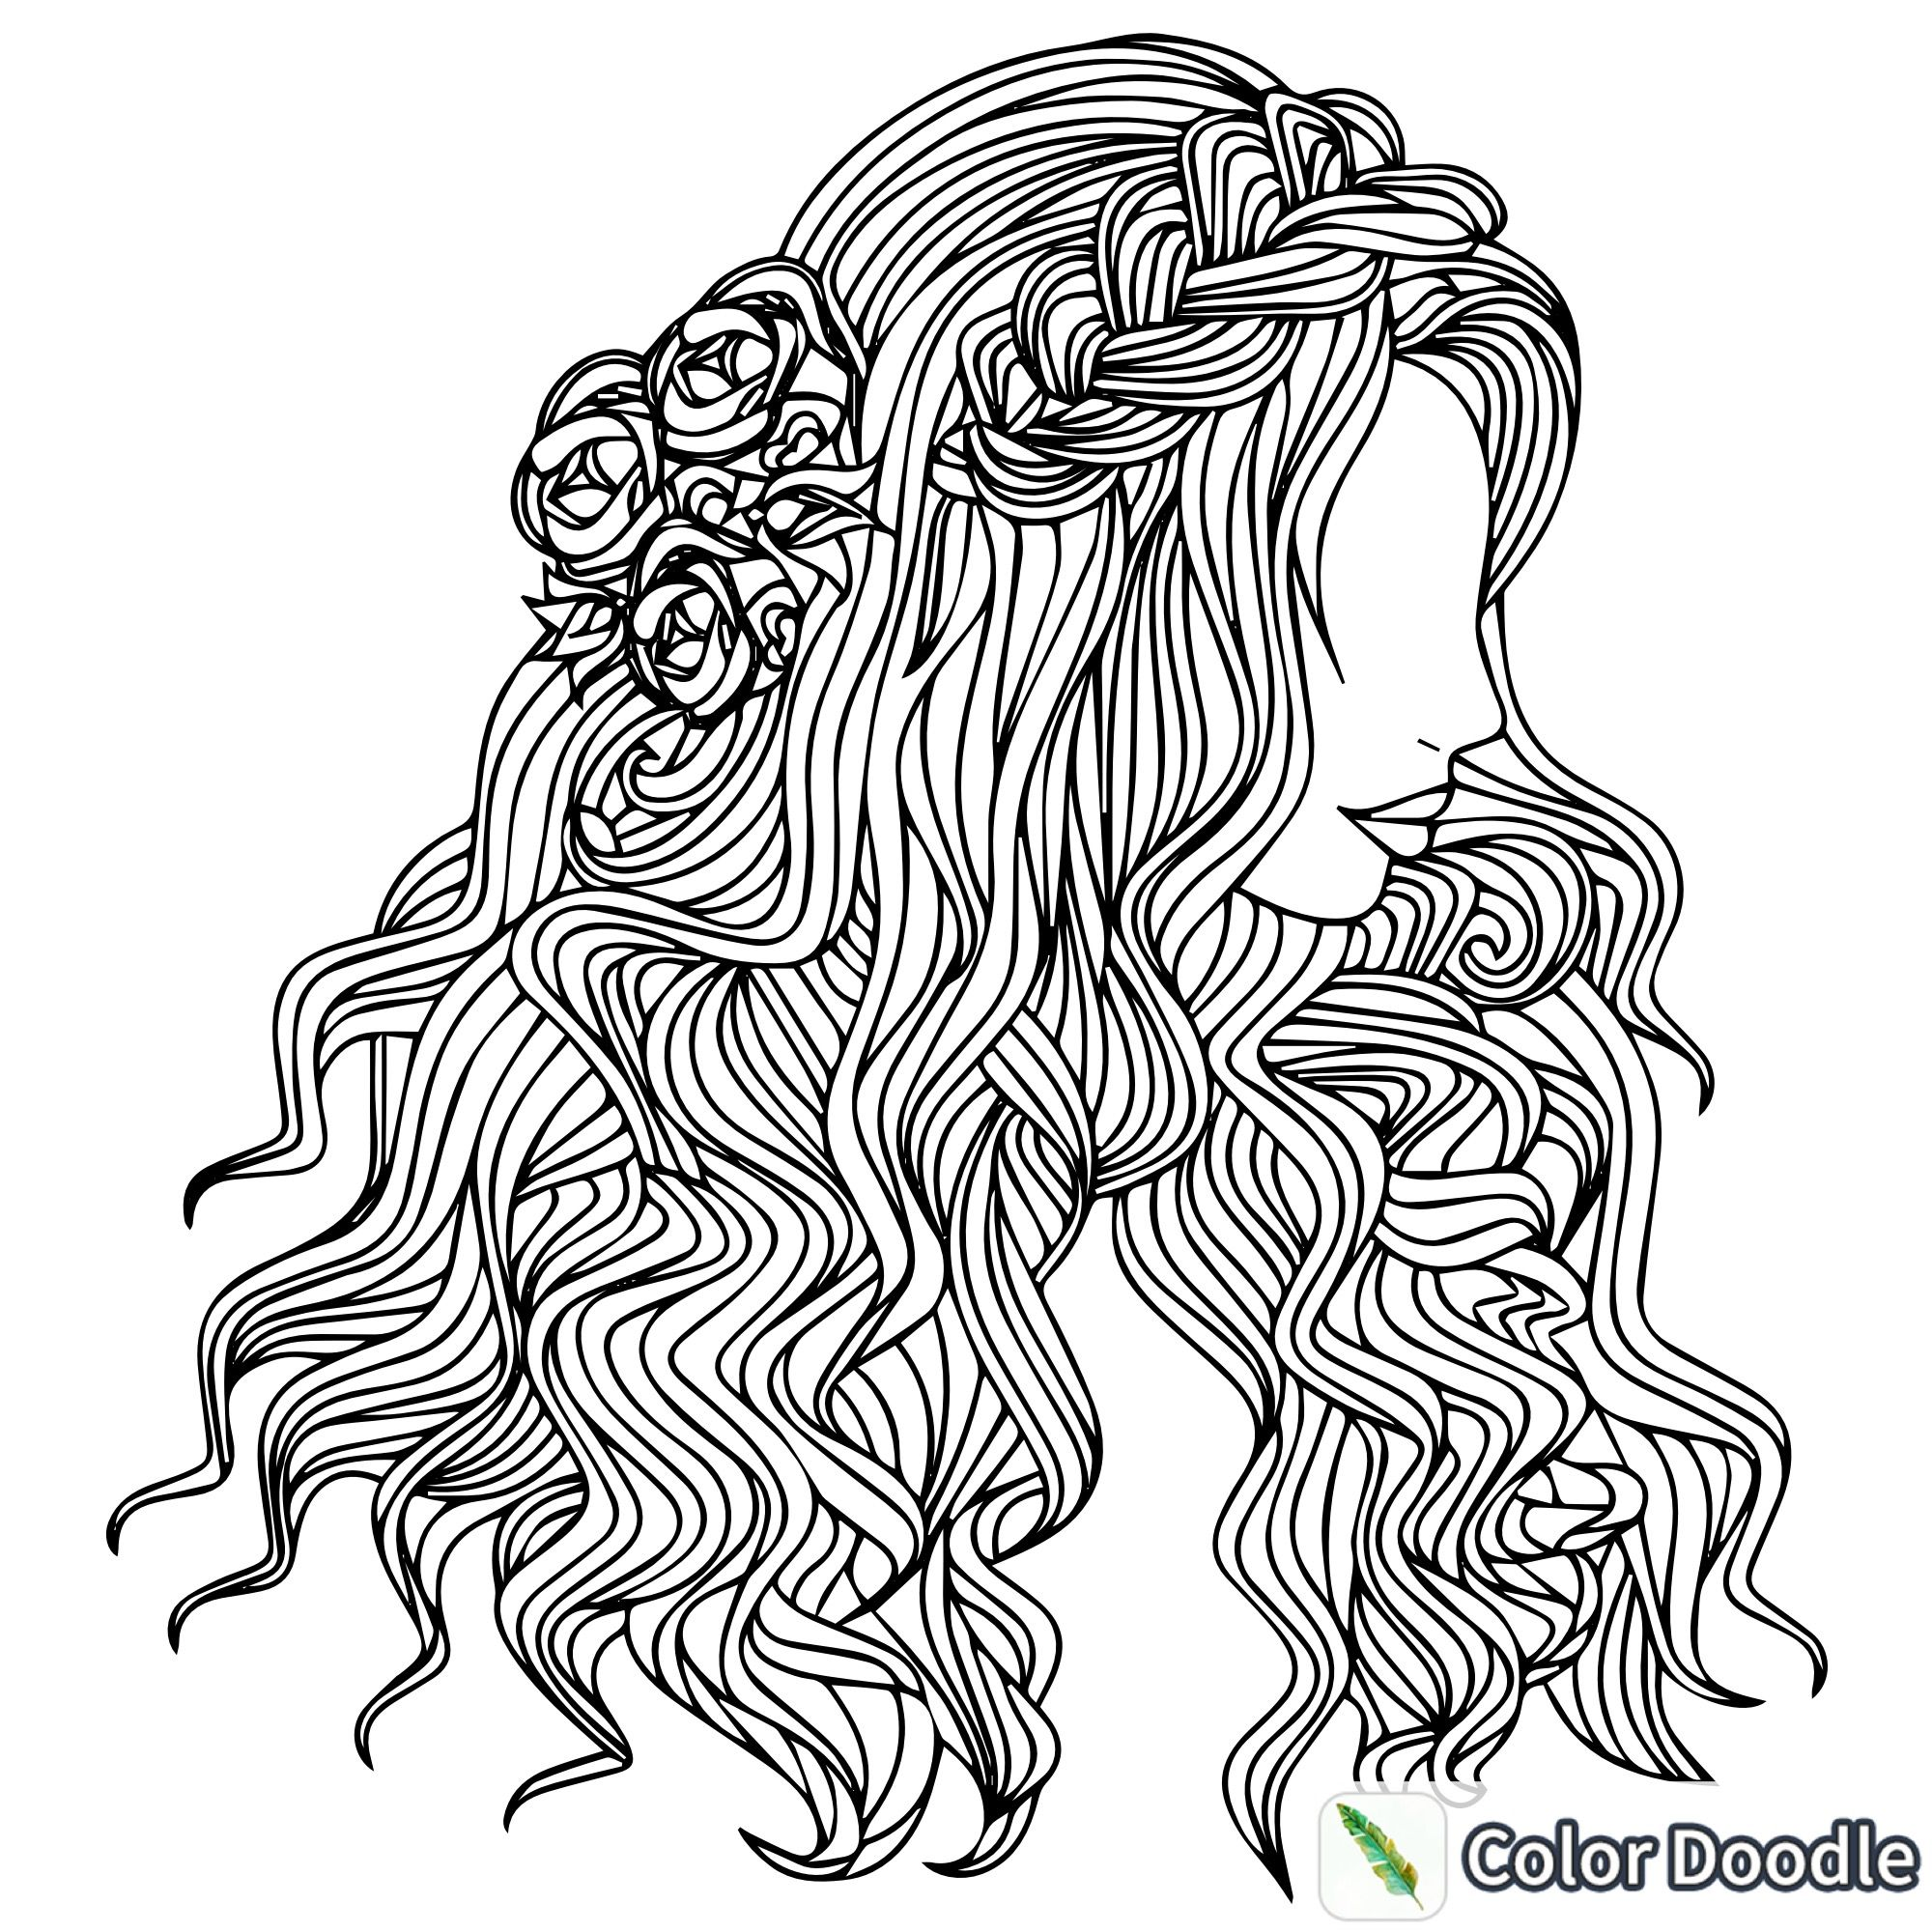 Pin De Coloring Pages For Adults En Coloring Pages Dibujos Para Colorear Imagenes Para Pintar Dibujos